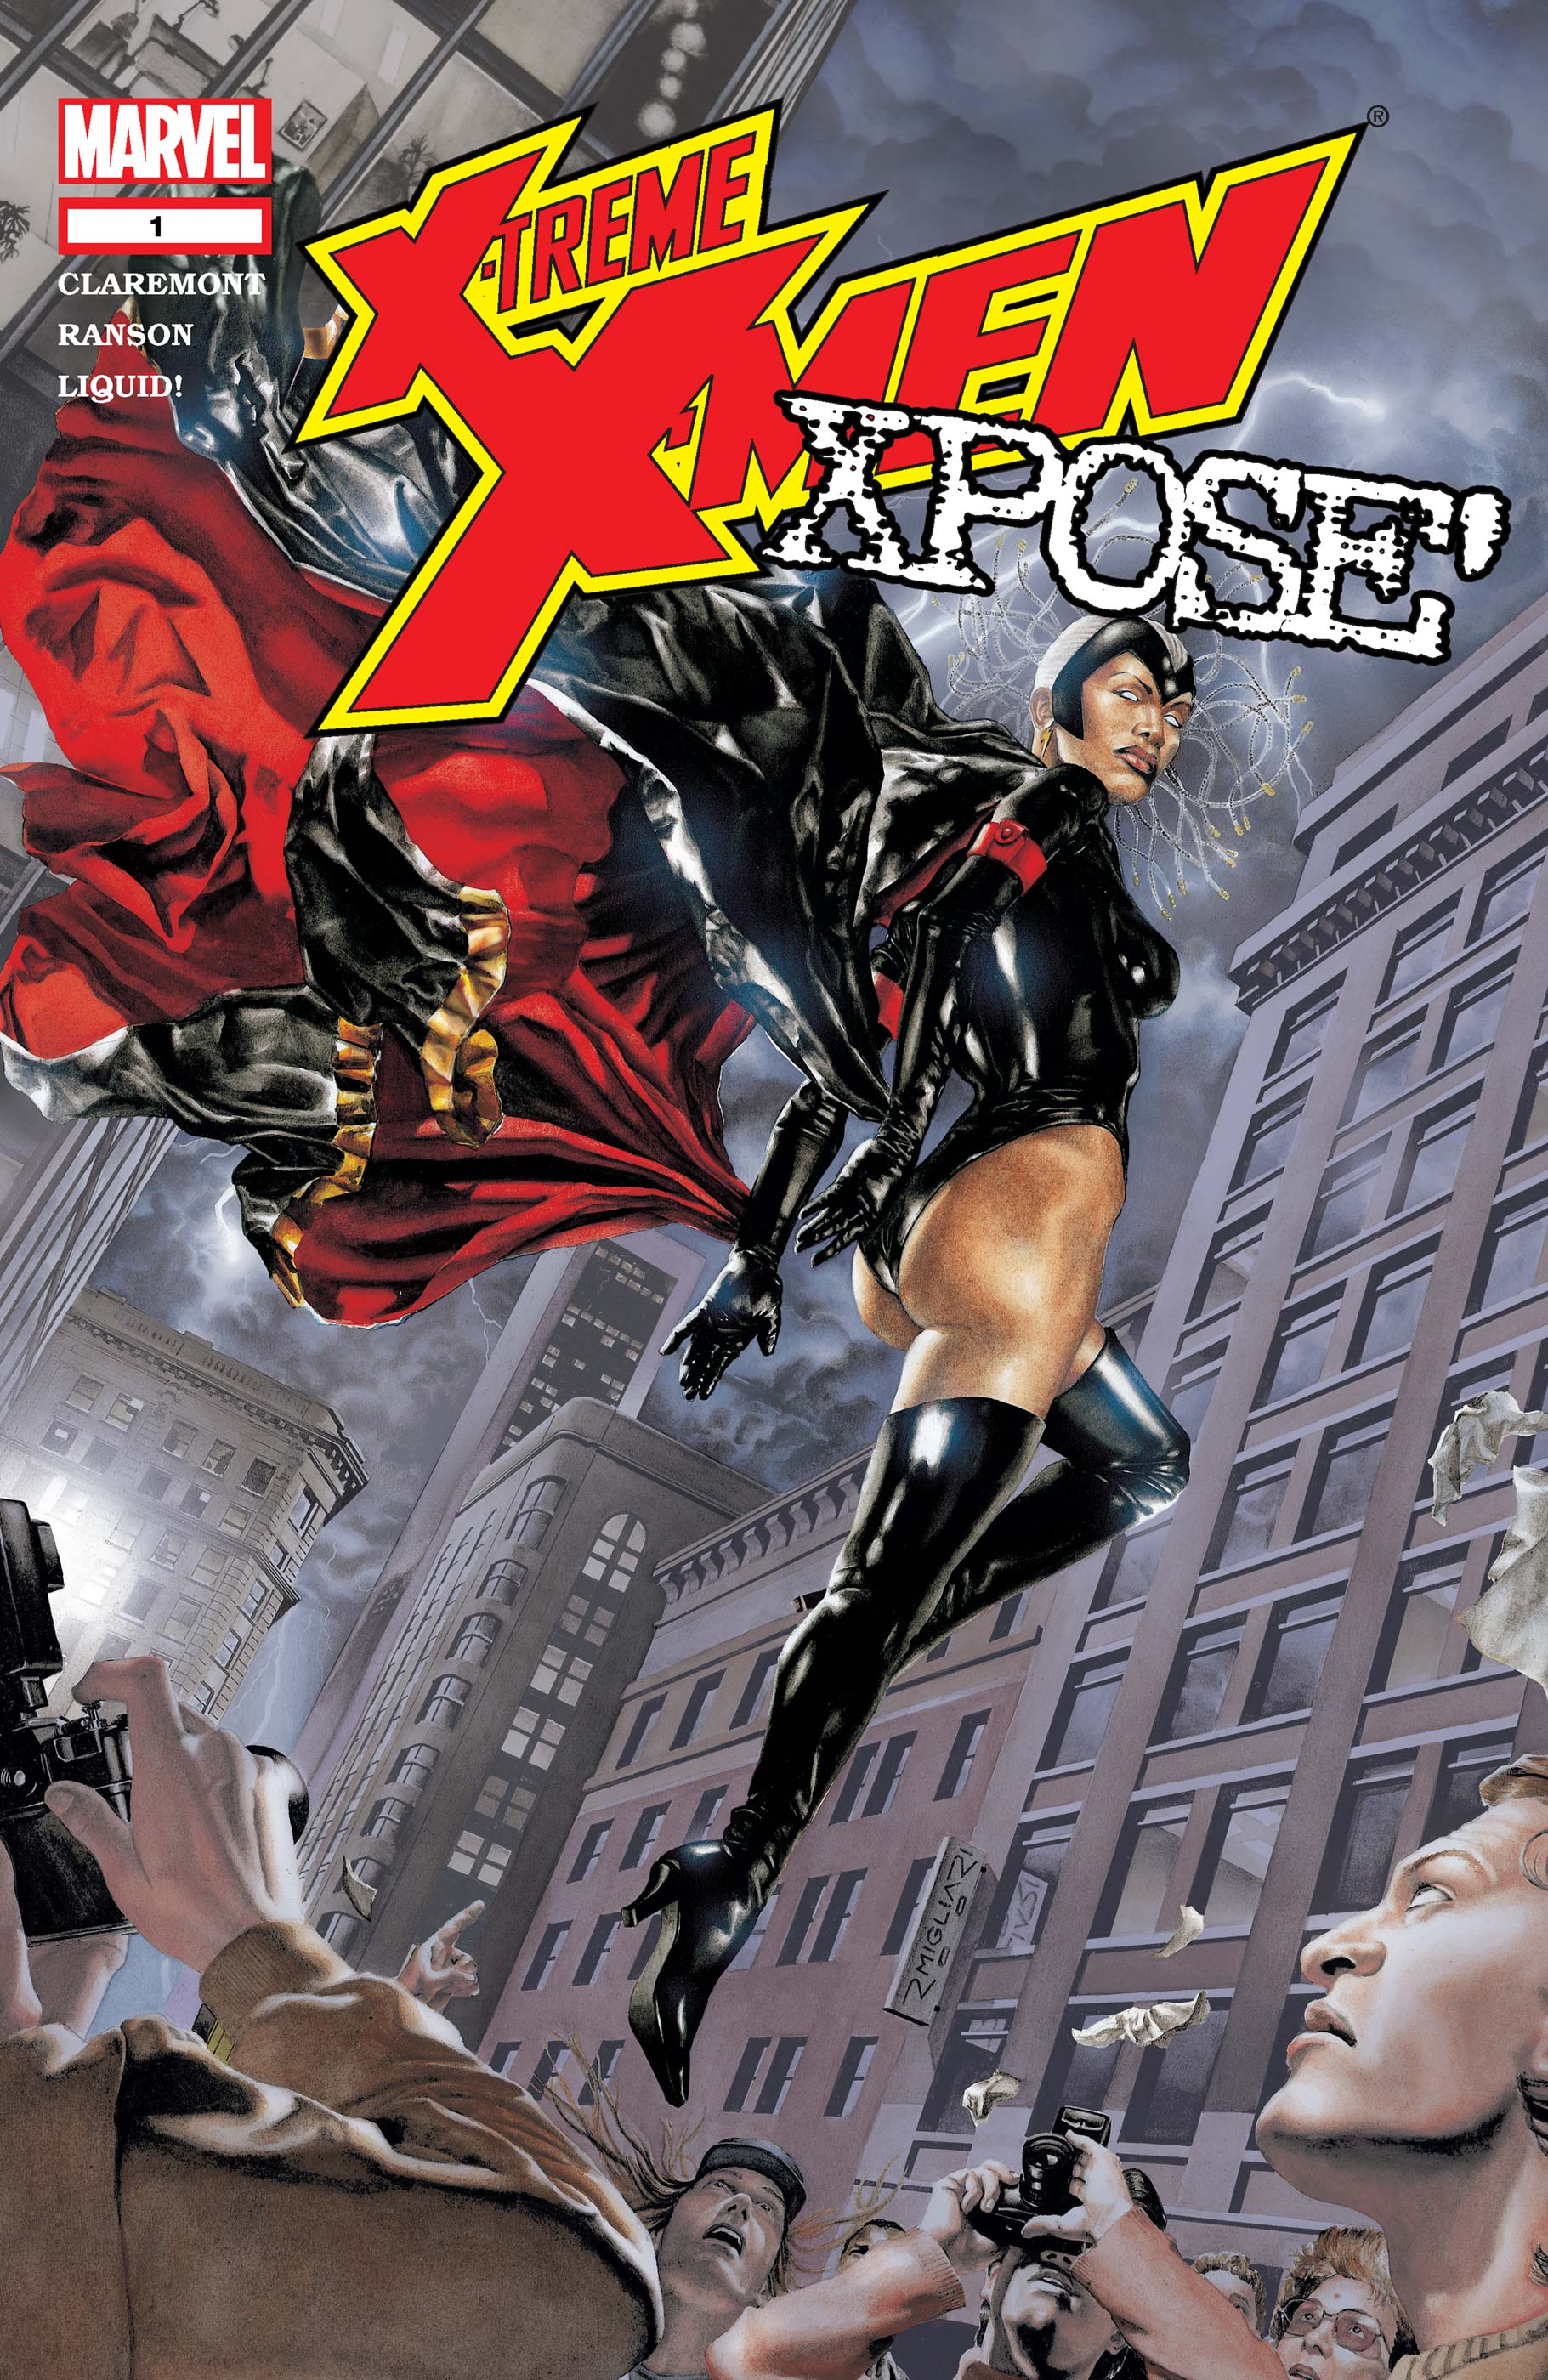 X-Treme X-Men: X-Pose (2003) #1